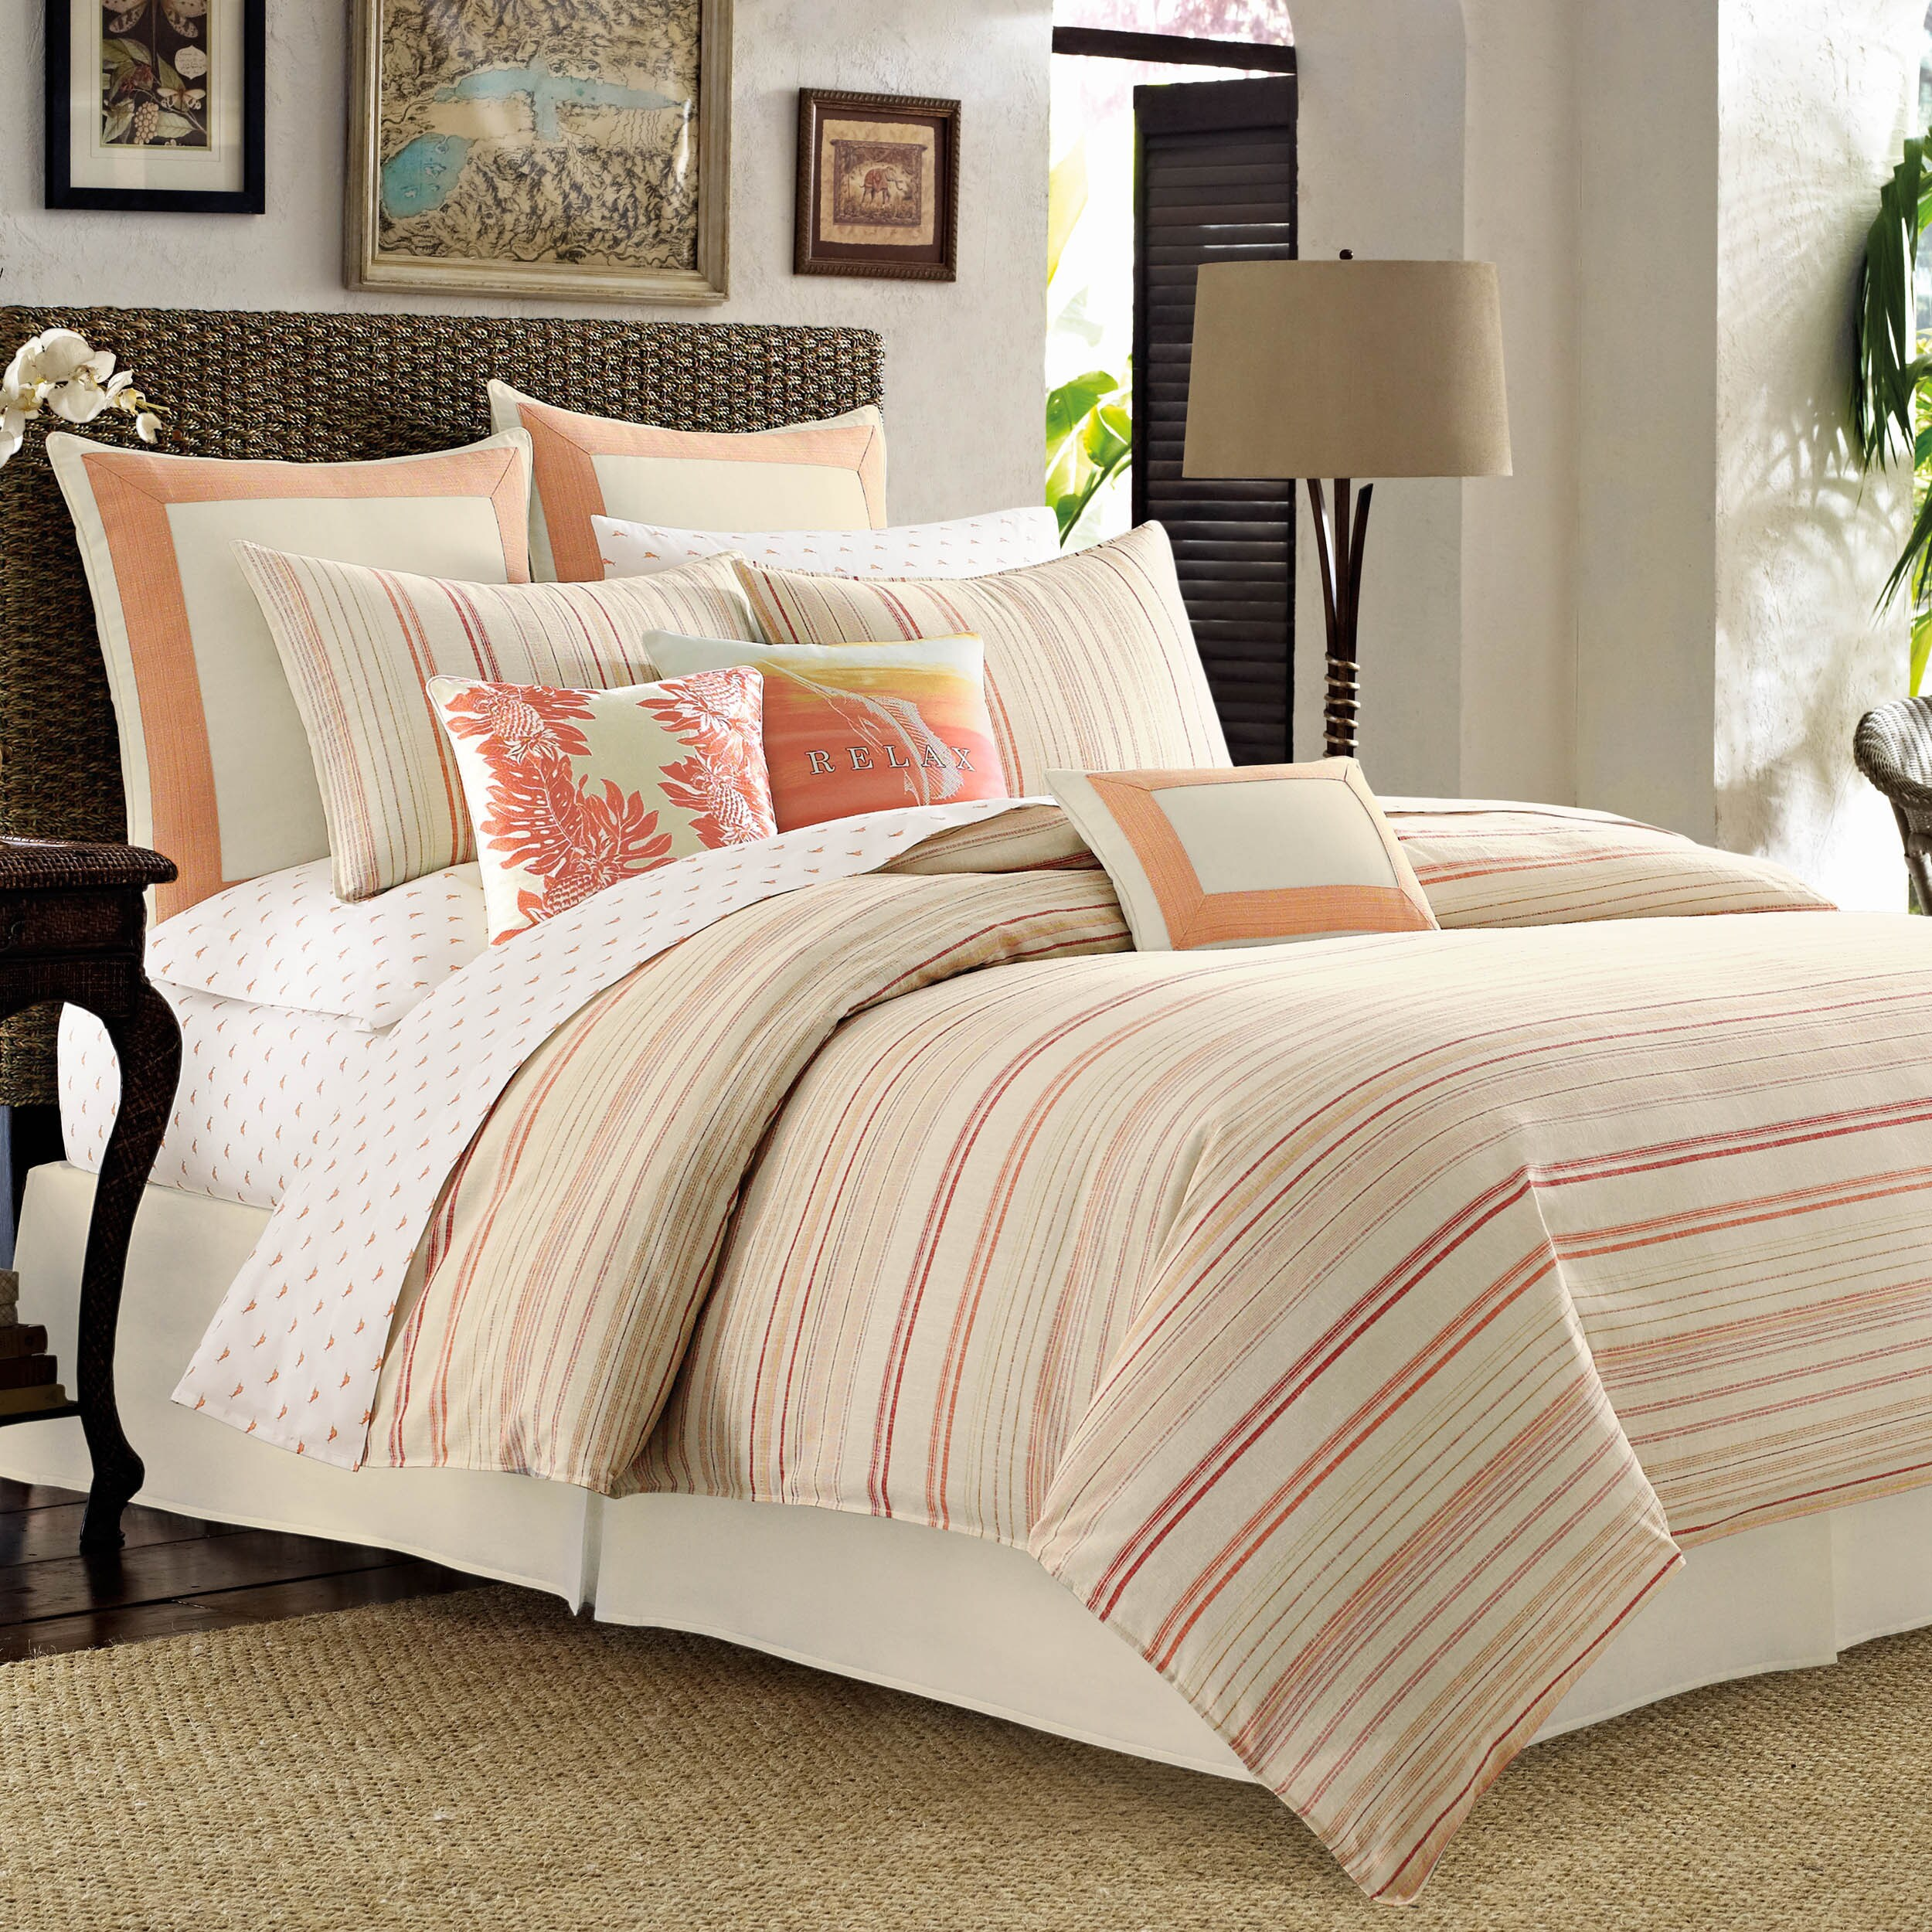 bamboo paradise duvet bahama queen king cover southern tommy breeze comforter set palm